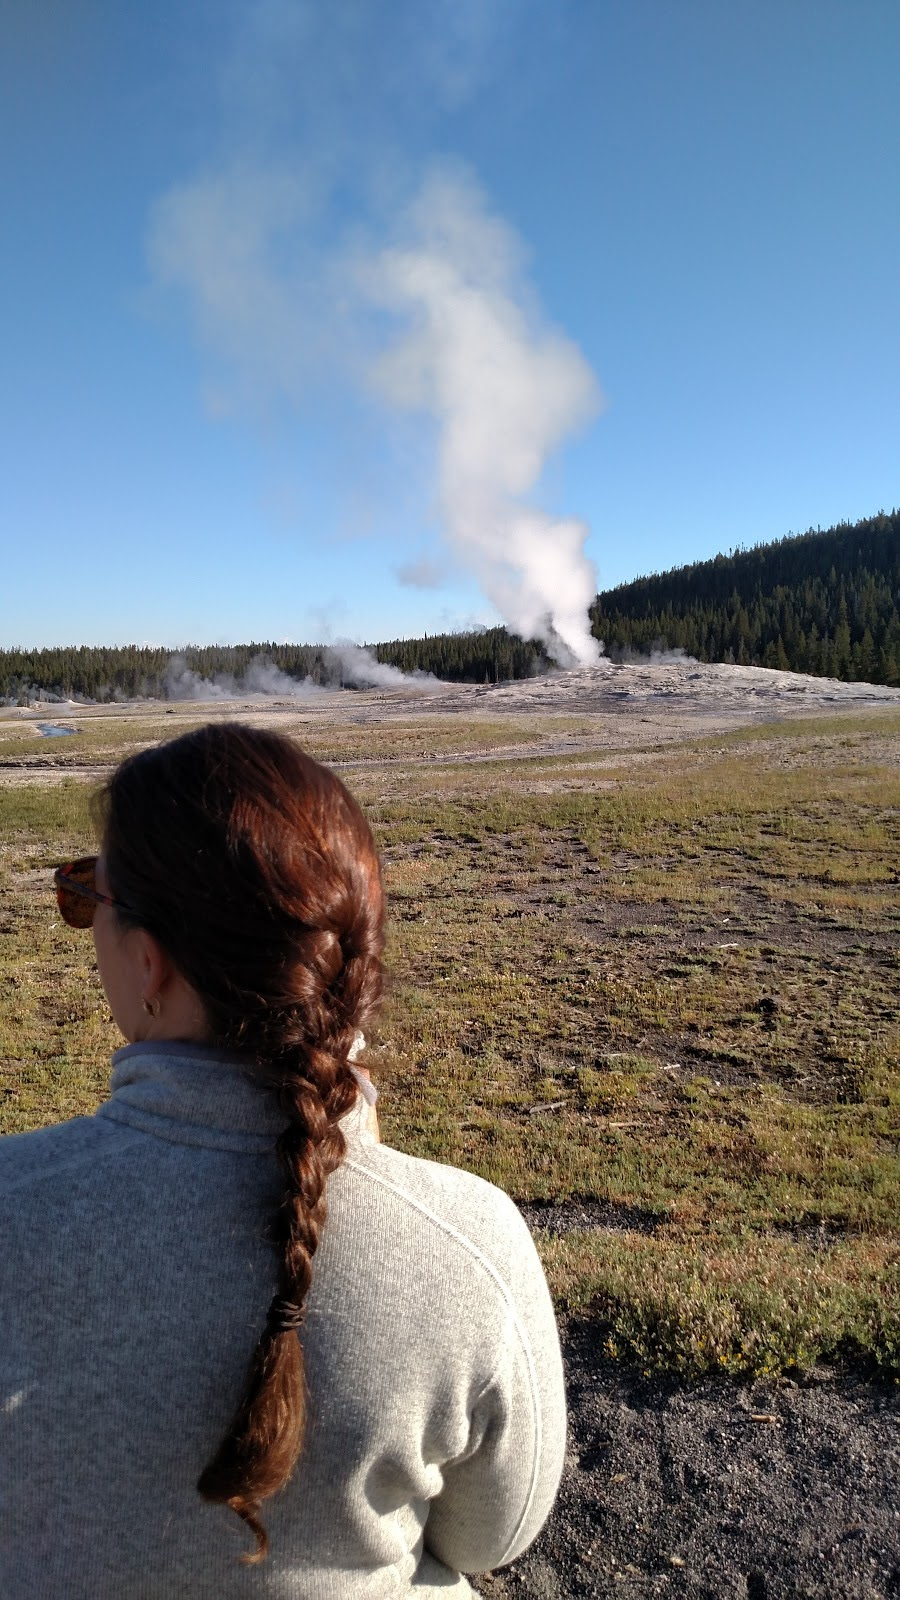 We didn't think Old Faithful was that cool, but we did like some of the other geysers, and coffee.